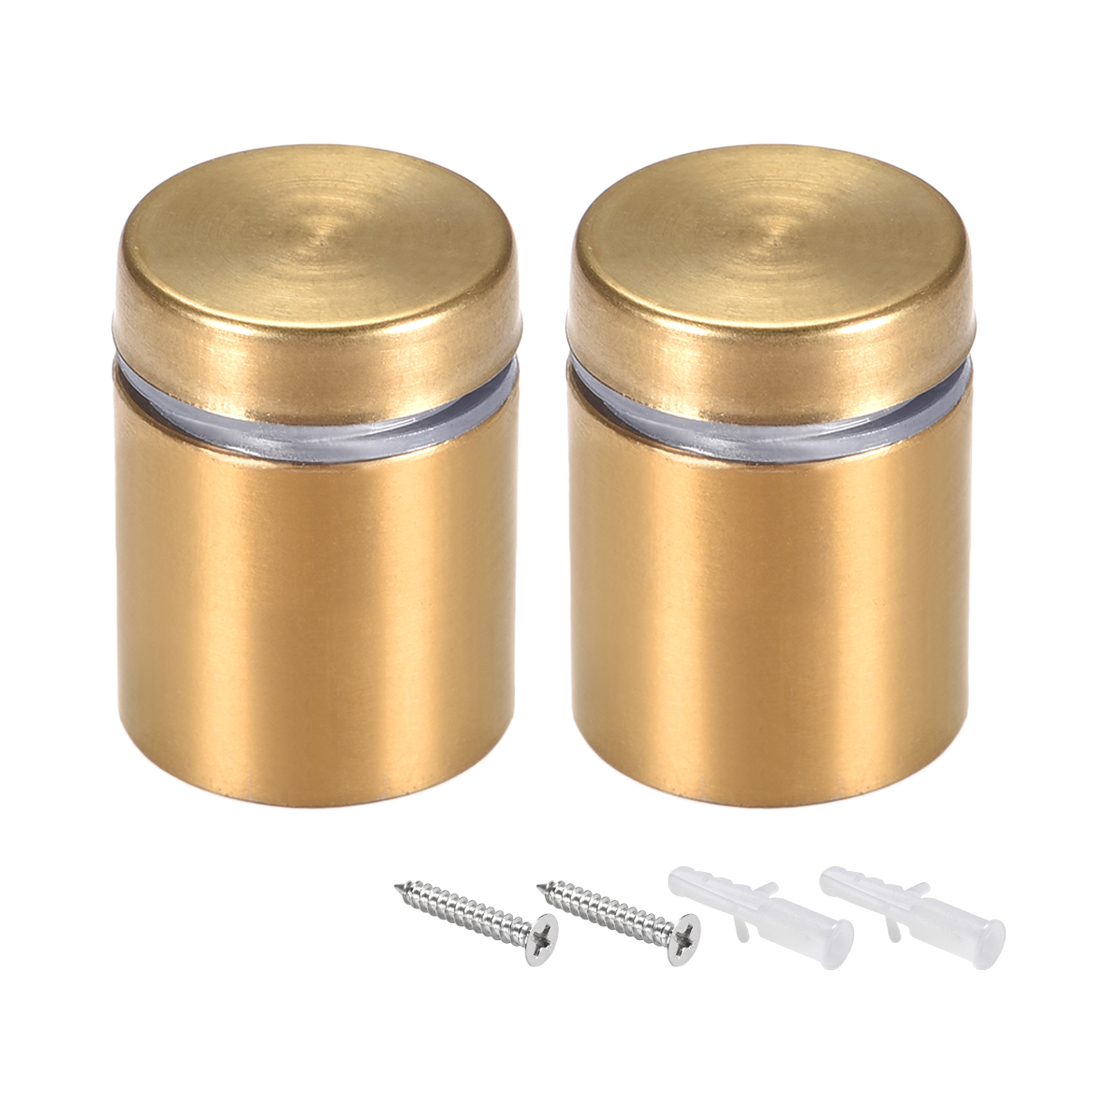 Glass Standoff Mount Wall Standoff Nails 19mm Dia 26mm Length Golden 2 Pcs